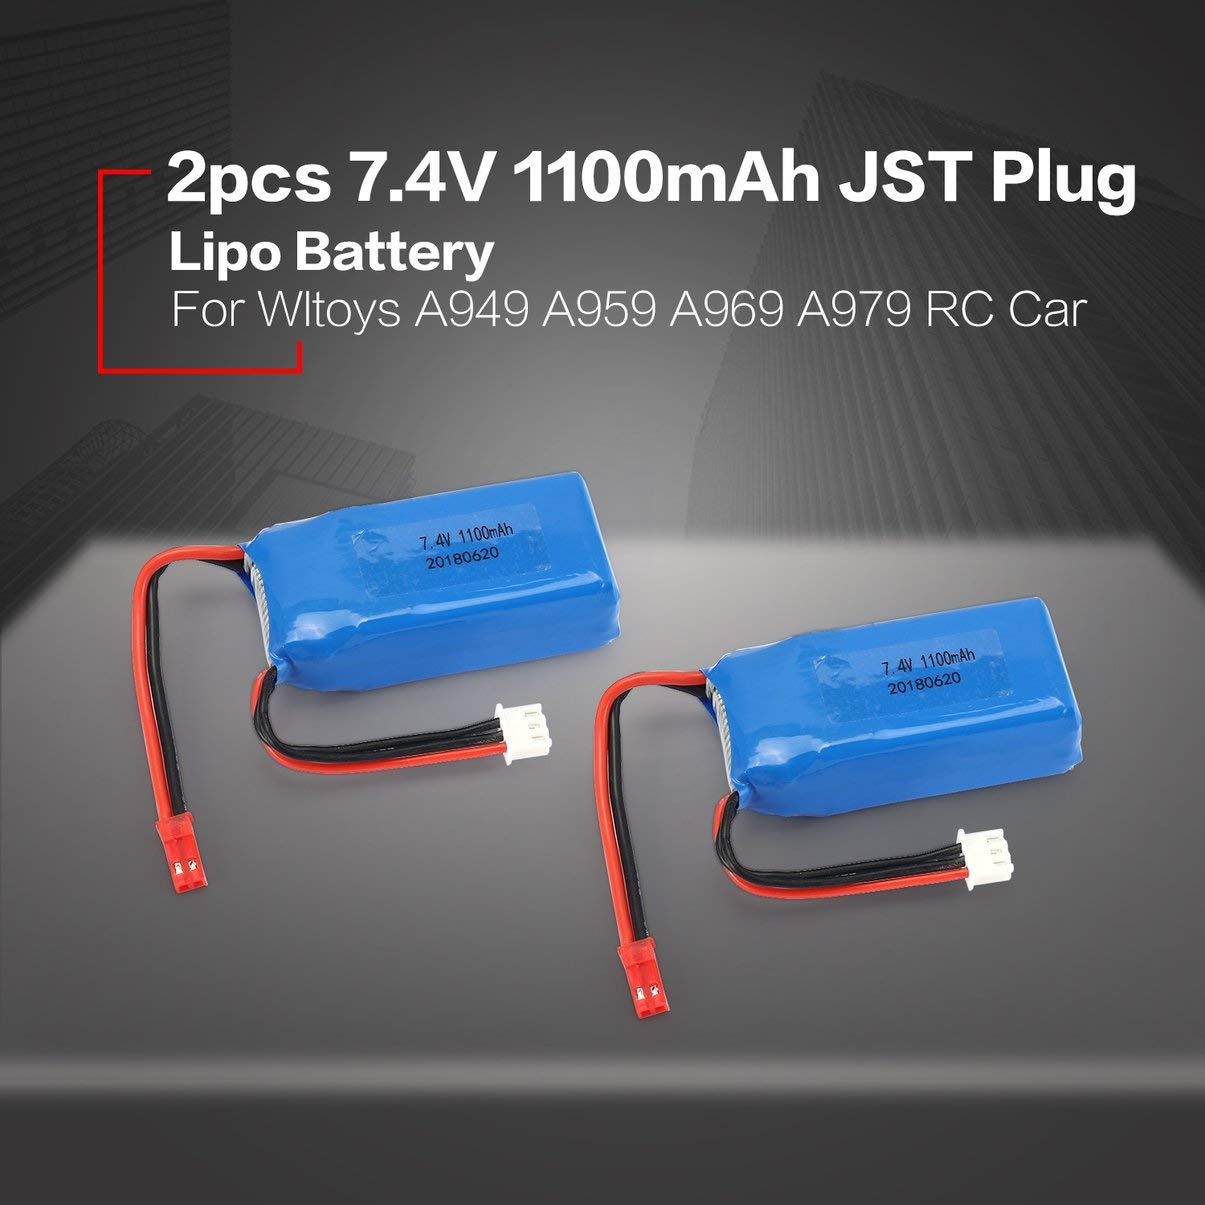 JullyeleFRgant 2pcs 7.4V 1100mAh 25C 2S Lipo Battery JST Plug Rechargeable for Wltoys A949 A959 A969 A979 RC Car Airplane Drone